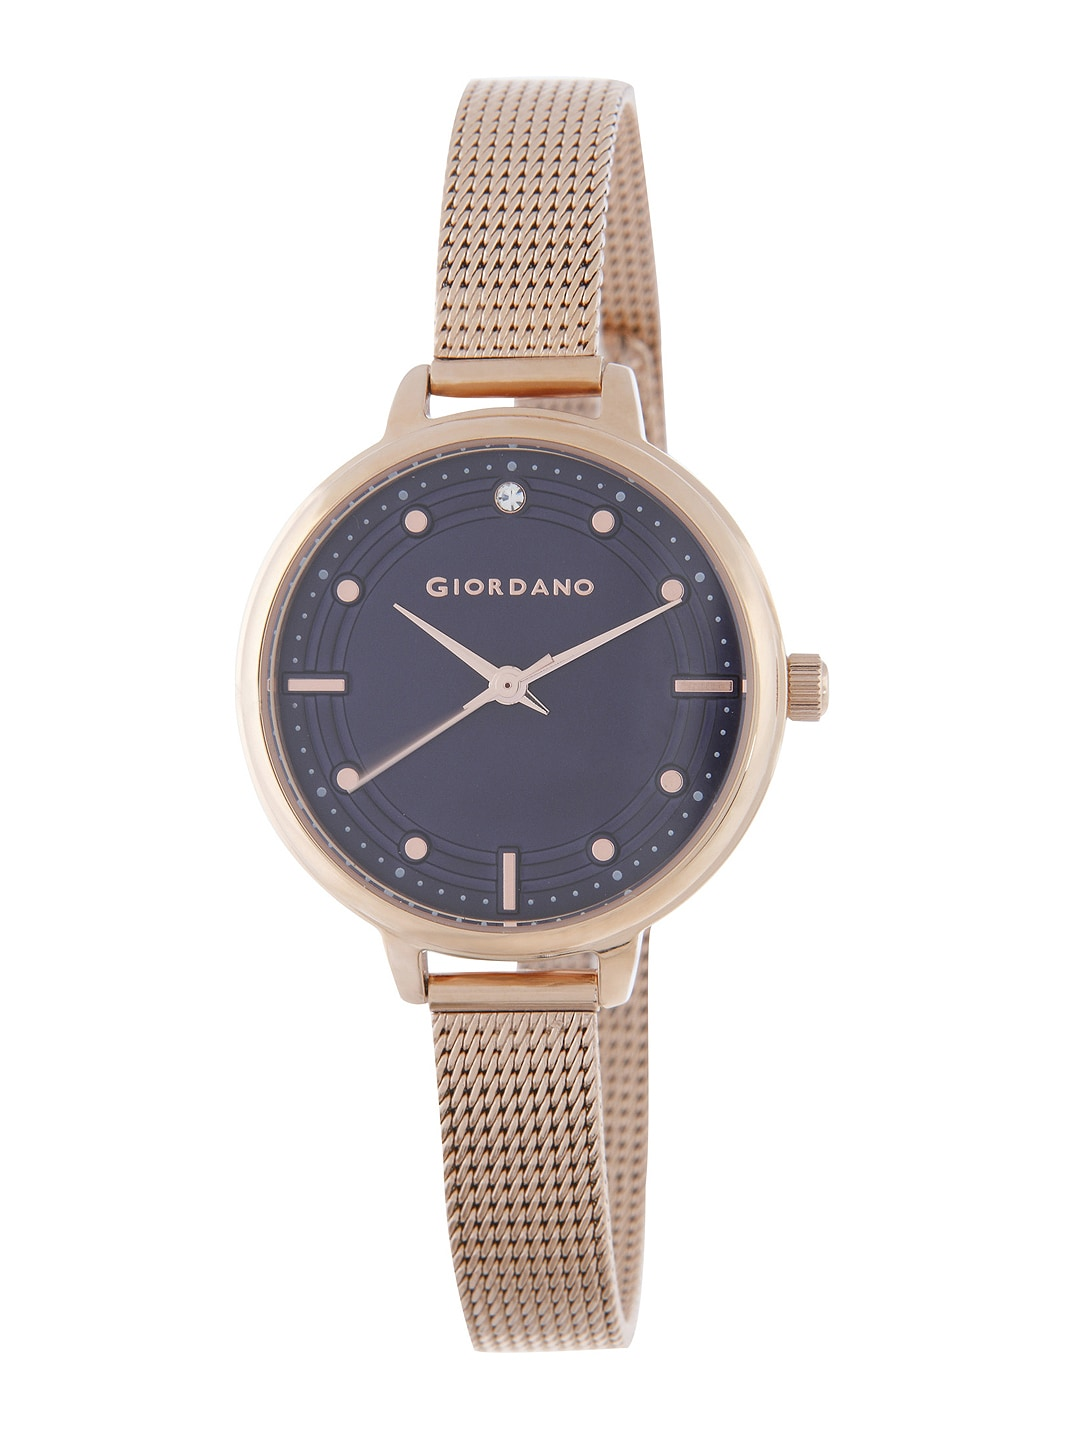 GIORDANO Women Navy Blue Analogue Watch 2872-66 image